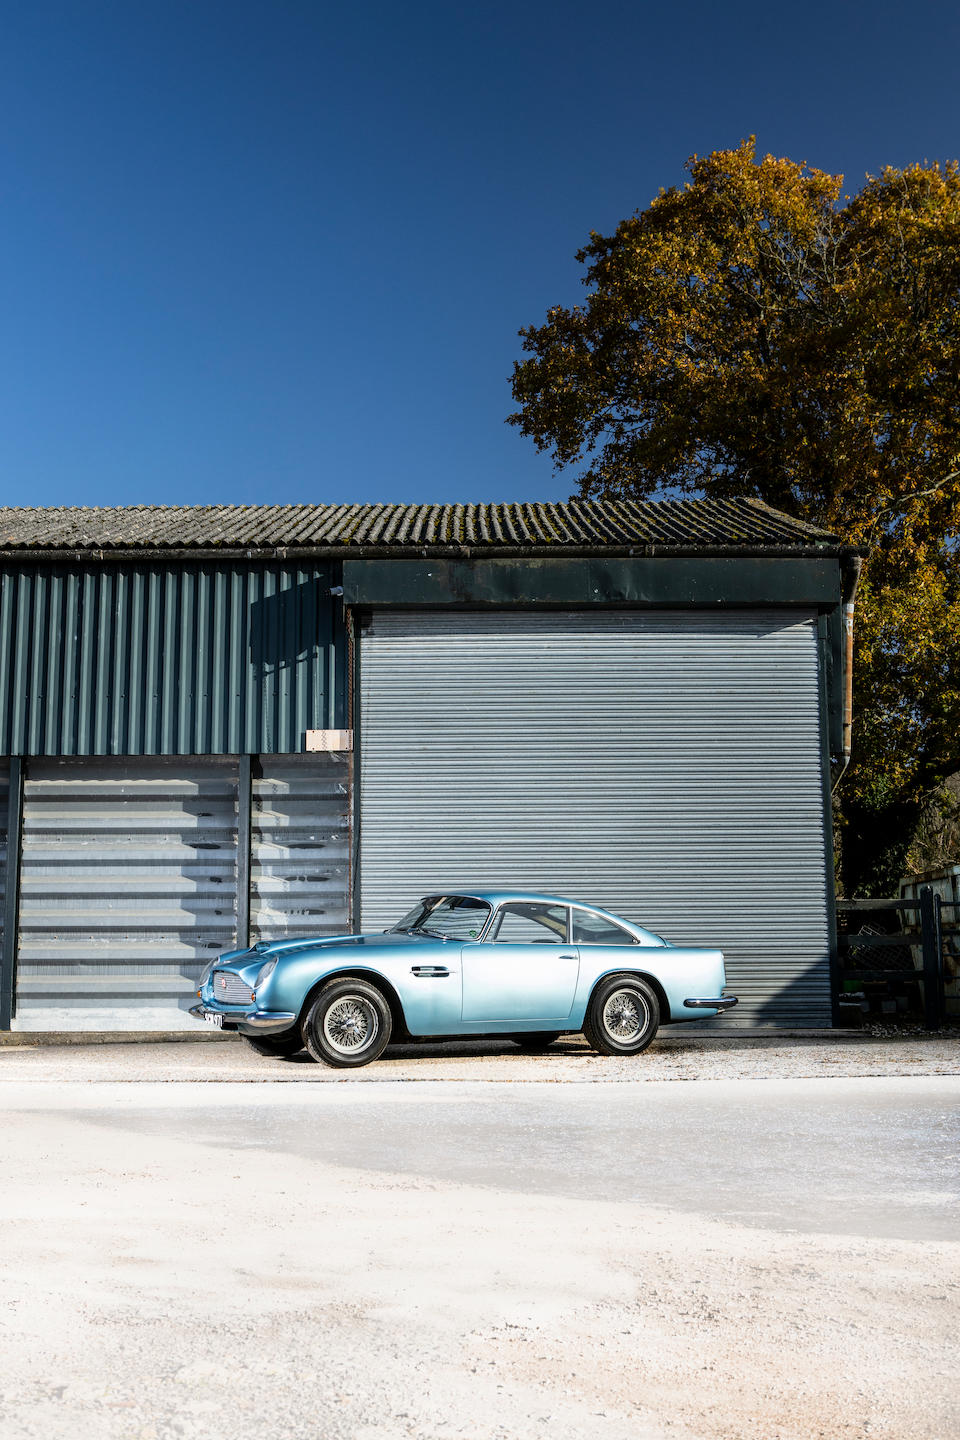 From the estate of the late Malcolm Cramp; The ex-Phil Scragg, In current ownership since 1965 and regarded as the 'Missing Lightweight',1961 Aston Martin DB4GT 'Lightweight' 4.2-Litre Sports Saloon  Chassis no. DB4GT/0169/R